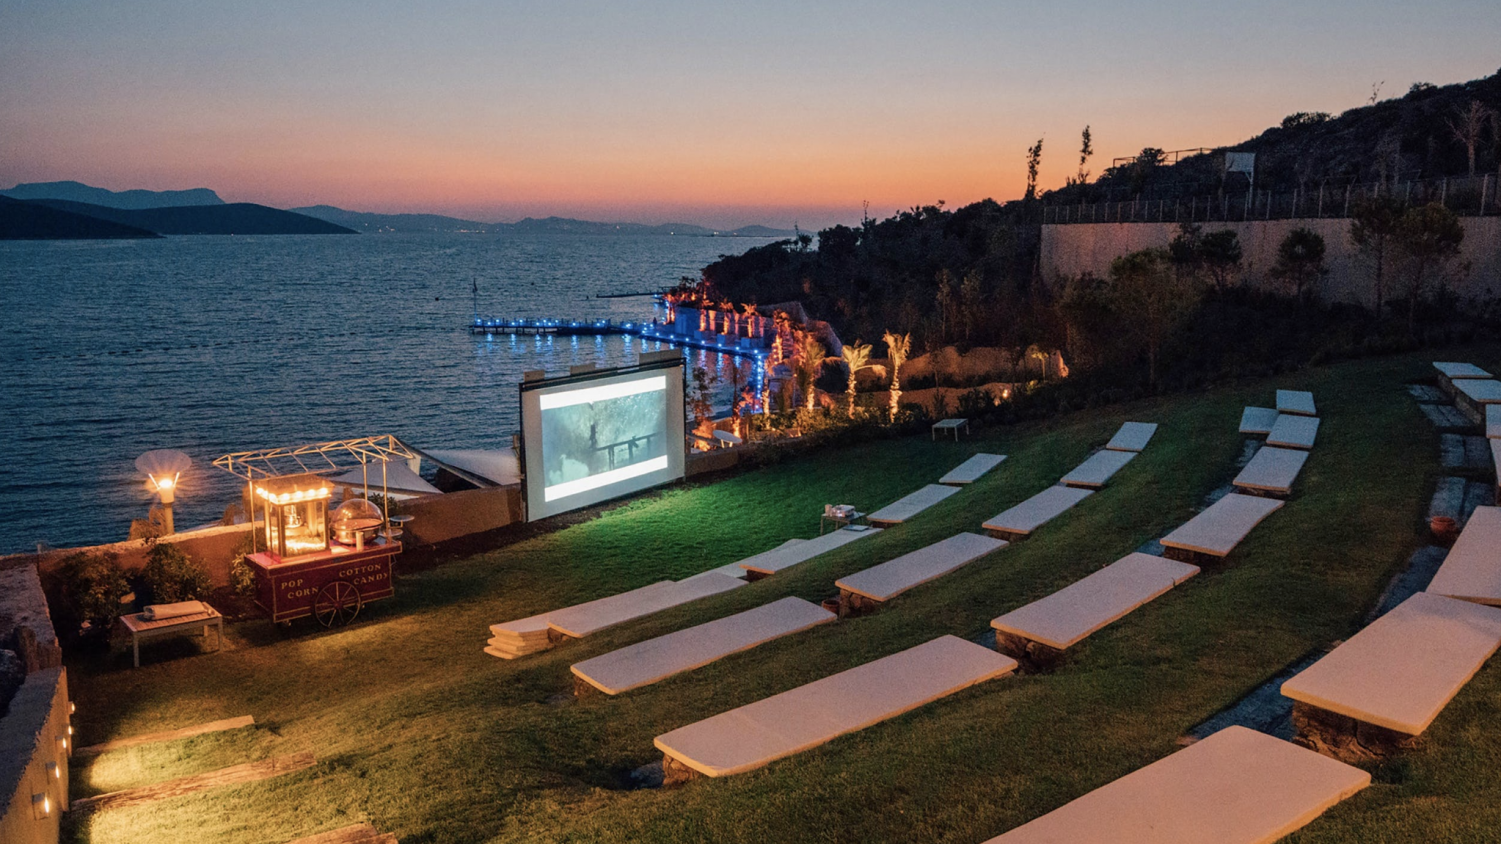 Outdoor+movies+are+a+perfect+way+to+enjoy+summer%27s+nighttime+weather.+During+the+day%2C+temperatures+are+scorching%2C+making+the+cool+summer+nights+the+perfect+time+to+get+some+fresh+air.+What+better+way+to+enjoy+the+weather+than+to+snuggle+up+with+blankets%2C+eat+buckets+of+popcorn%2C+and+enjoy+a+movie+with+friends+and+family.+Take+a+trip+to+a+drive-in+movie+theater+or+set+up+a+movie+at+home+using+a+projector+and+a+flat+surface%2C+either+way+you+are+bound+to+have+fun.